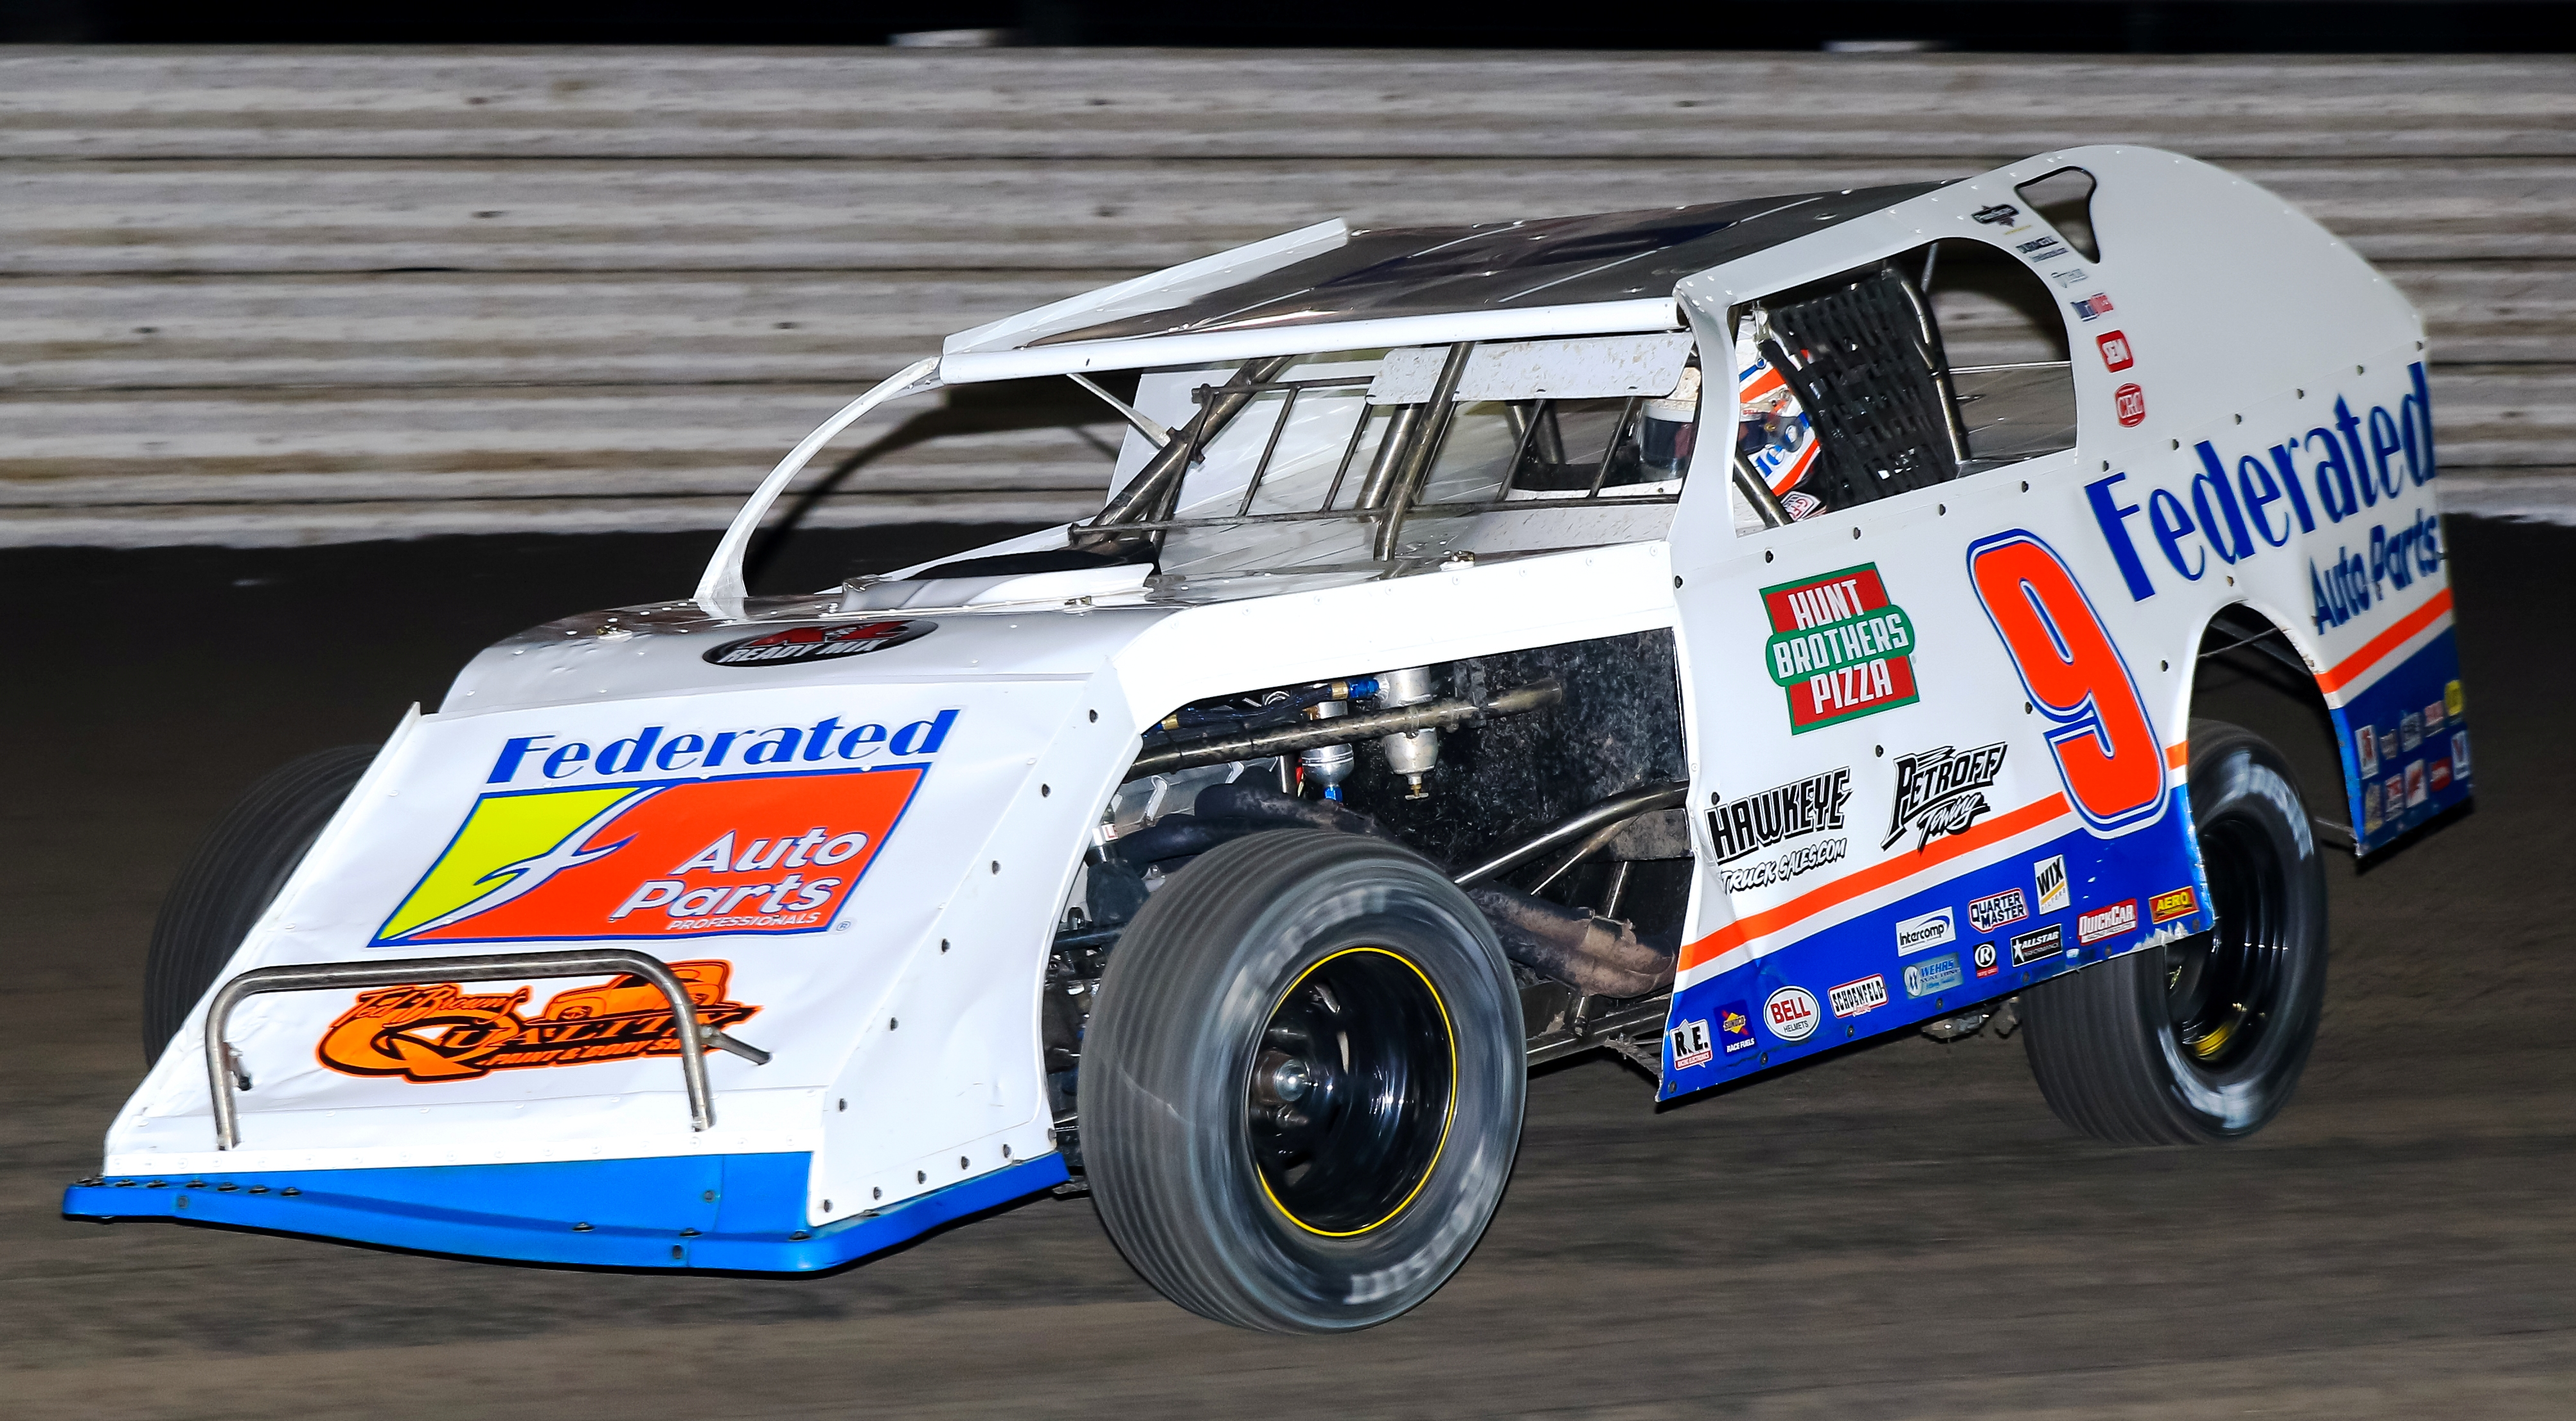 Federated To Team Up With Ken Schrader Racing